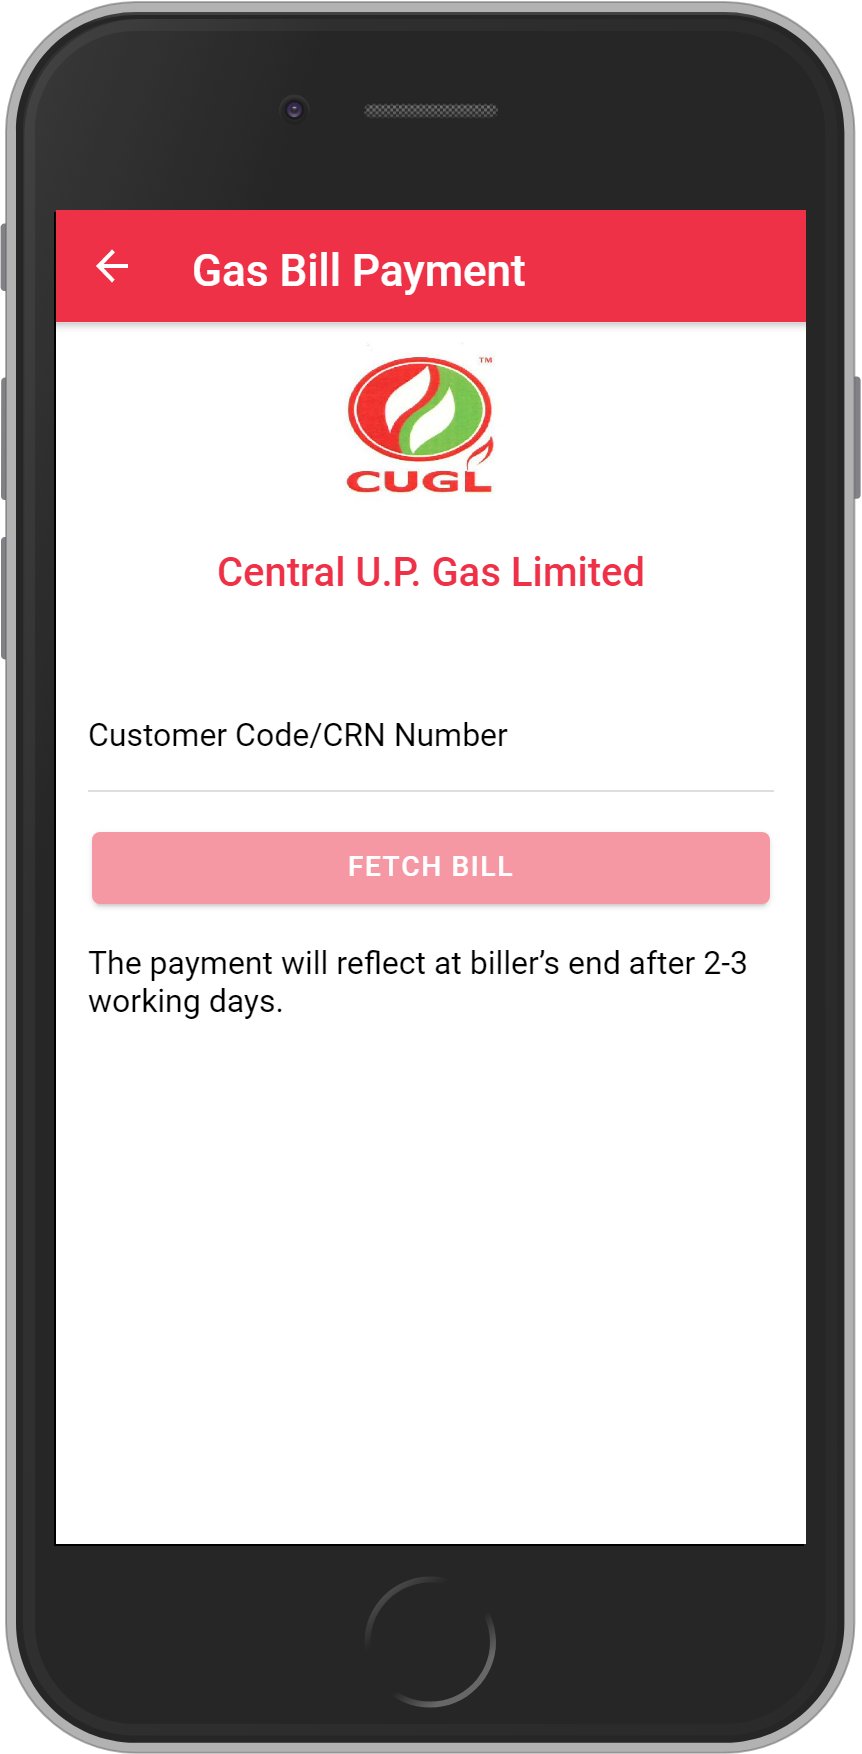 Get UNLIMITED <b>0.1%</b> CASHBACK on Central U.P. Gas Limited Bill Payment.